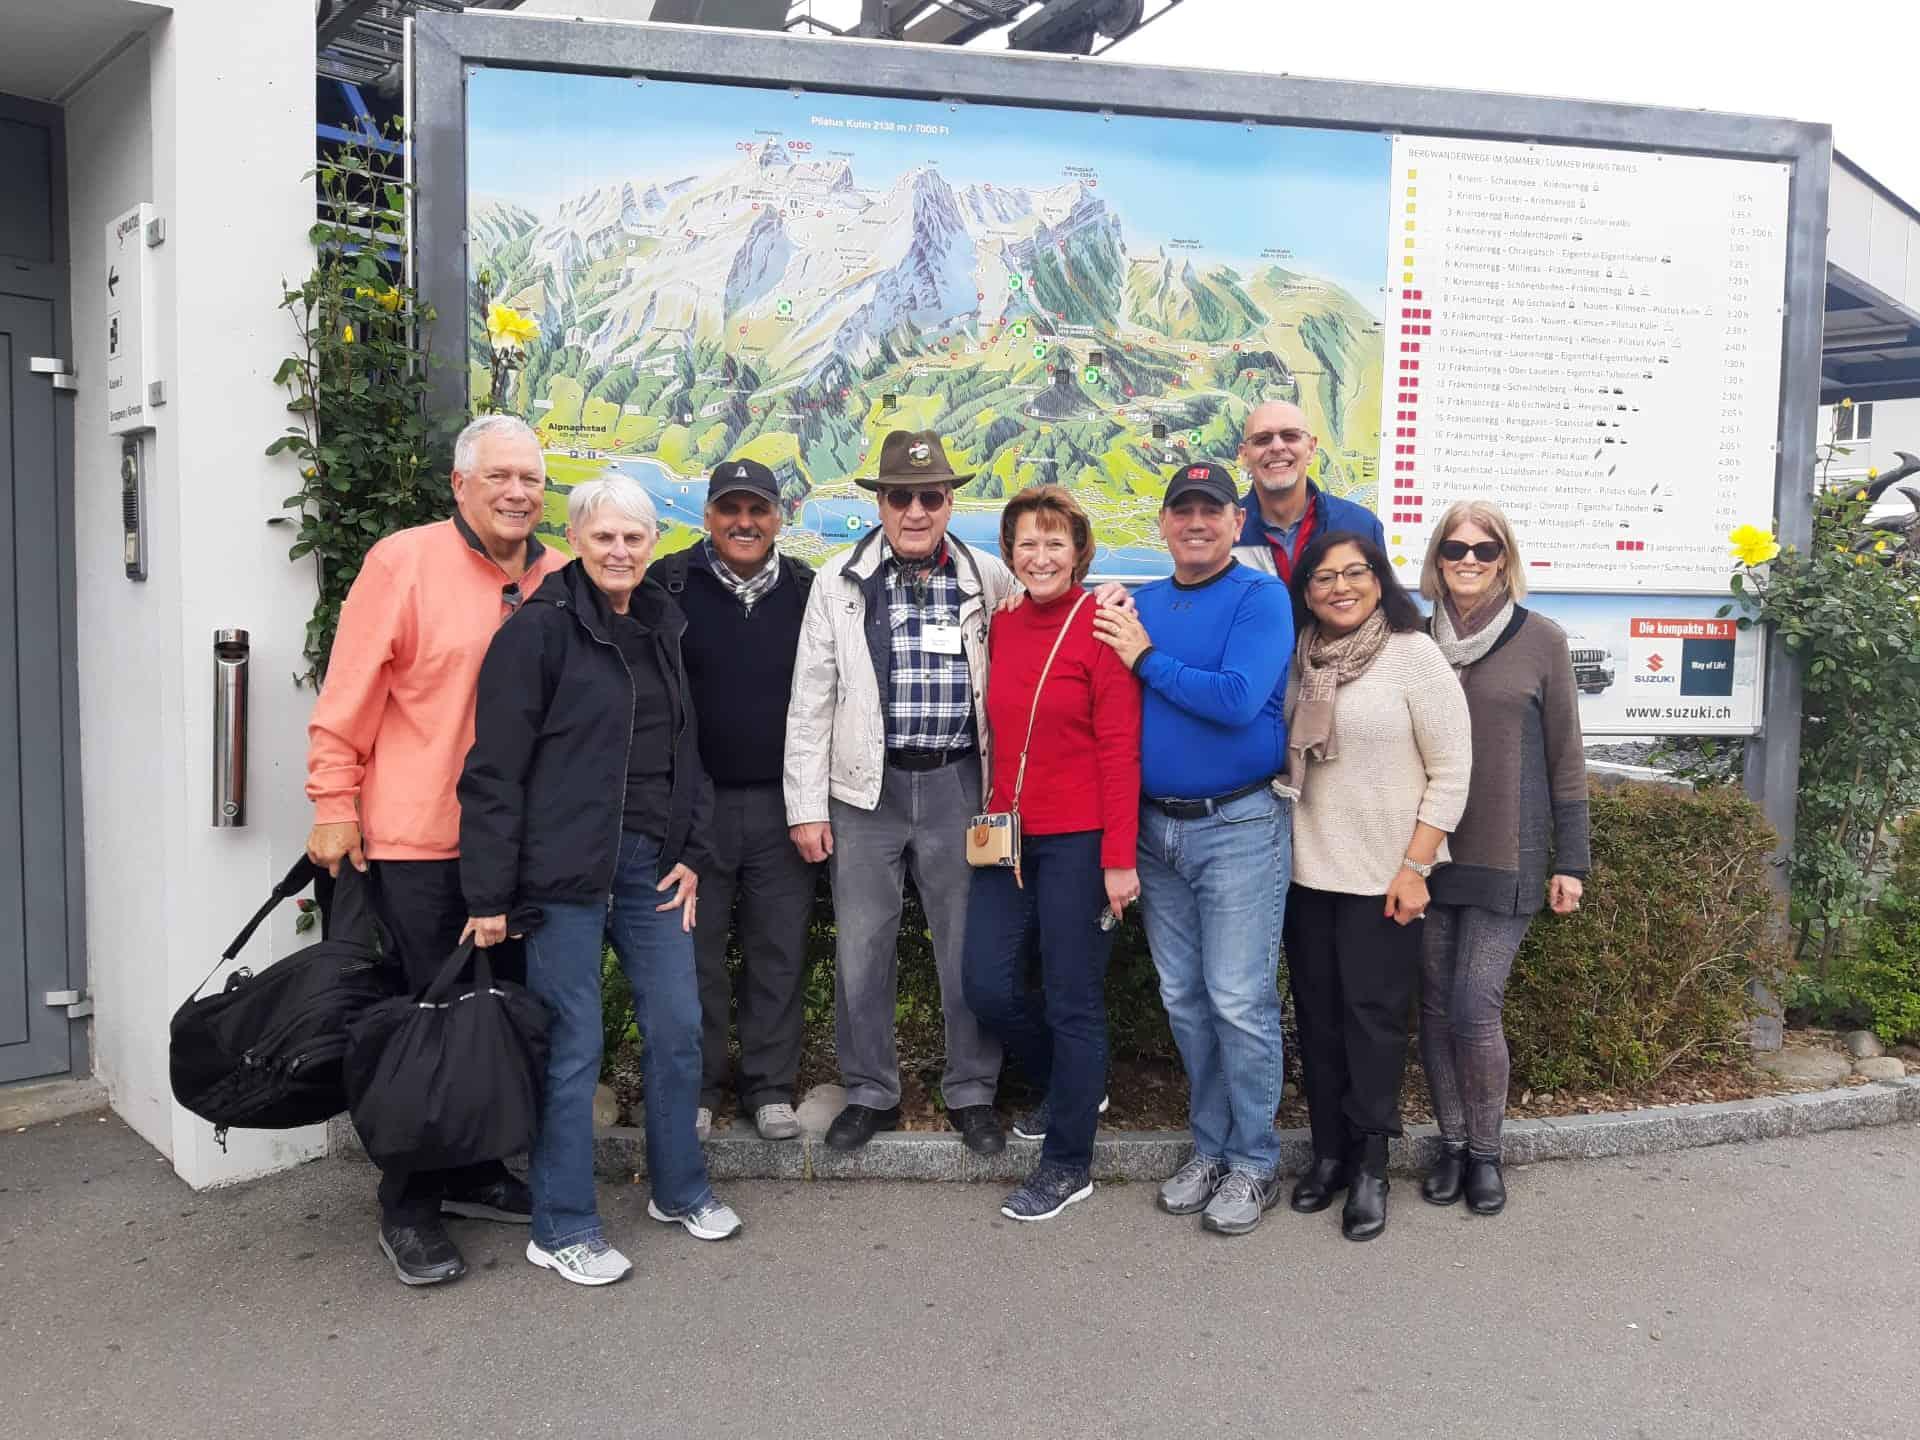 Customer Story of Brend Private Tour to Pilatus